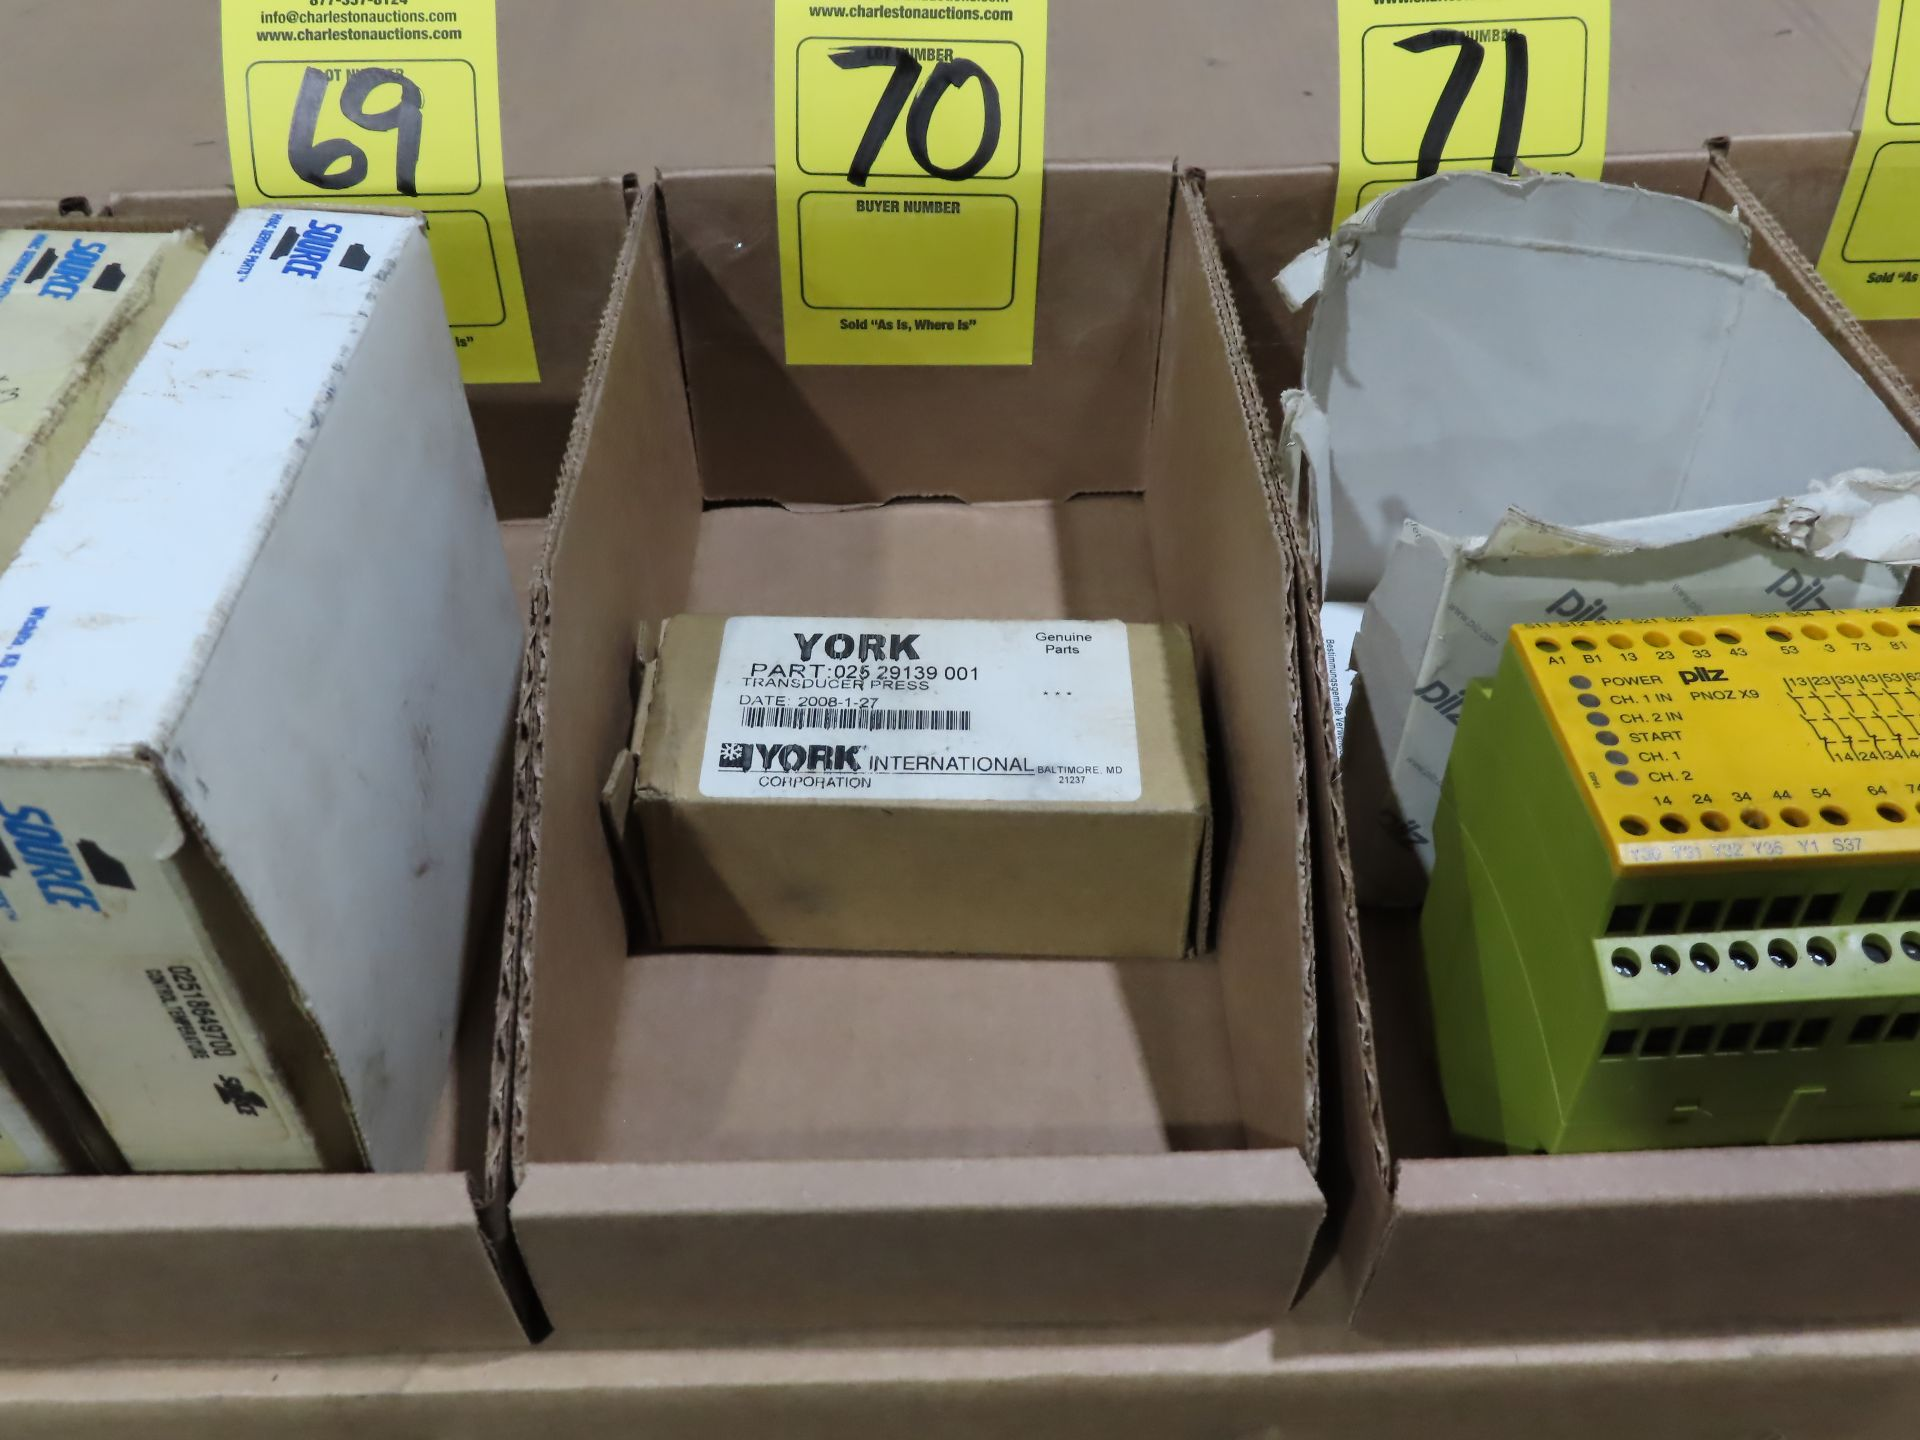 Lot 70 - York part number 025-29139-001, new in box, as always, with Brolyn LLC auctions, all lots can be